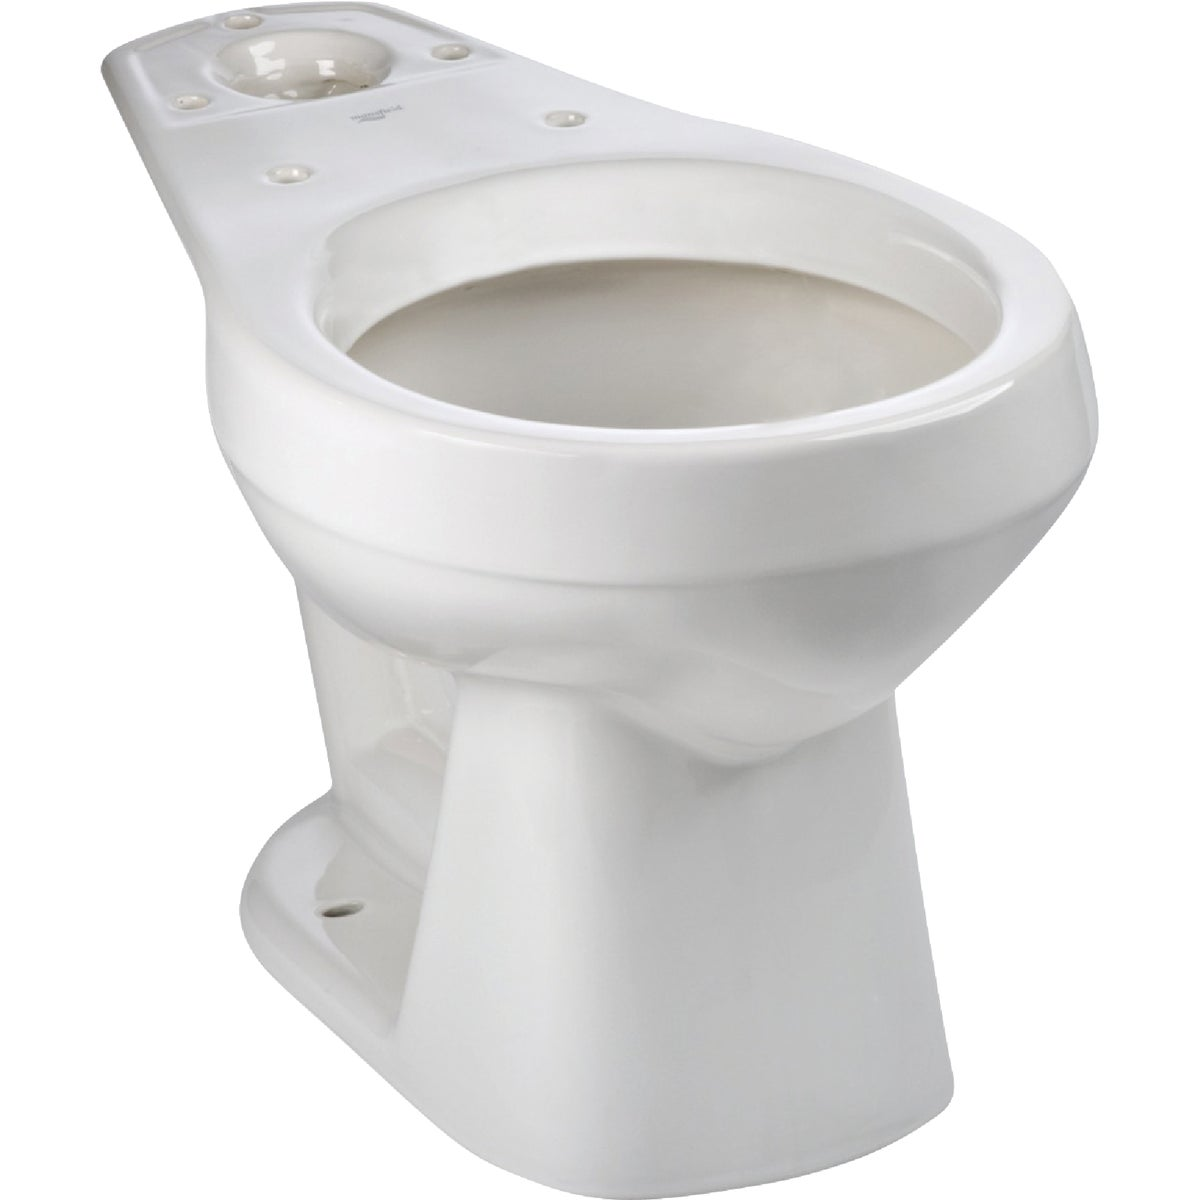 WHITE RF TOILET BOWL - 130010007 by Mansfield Plumbing